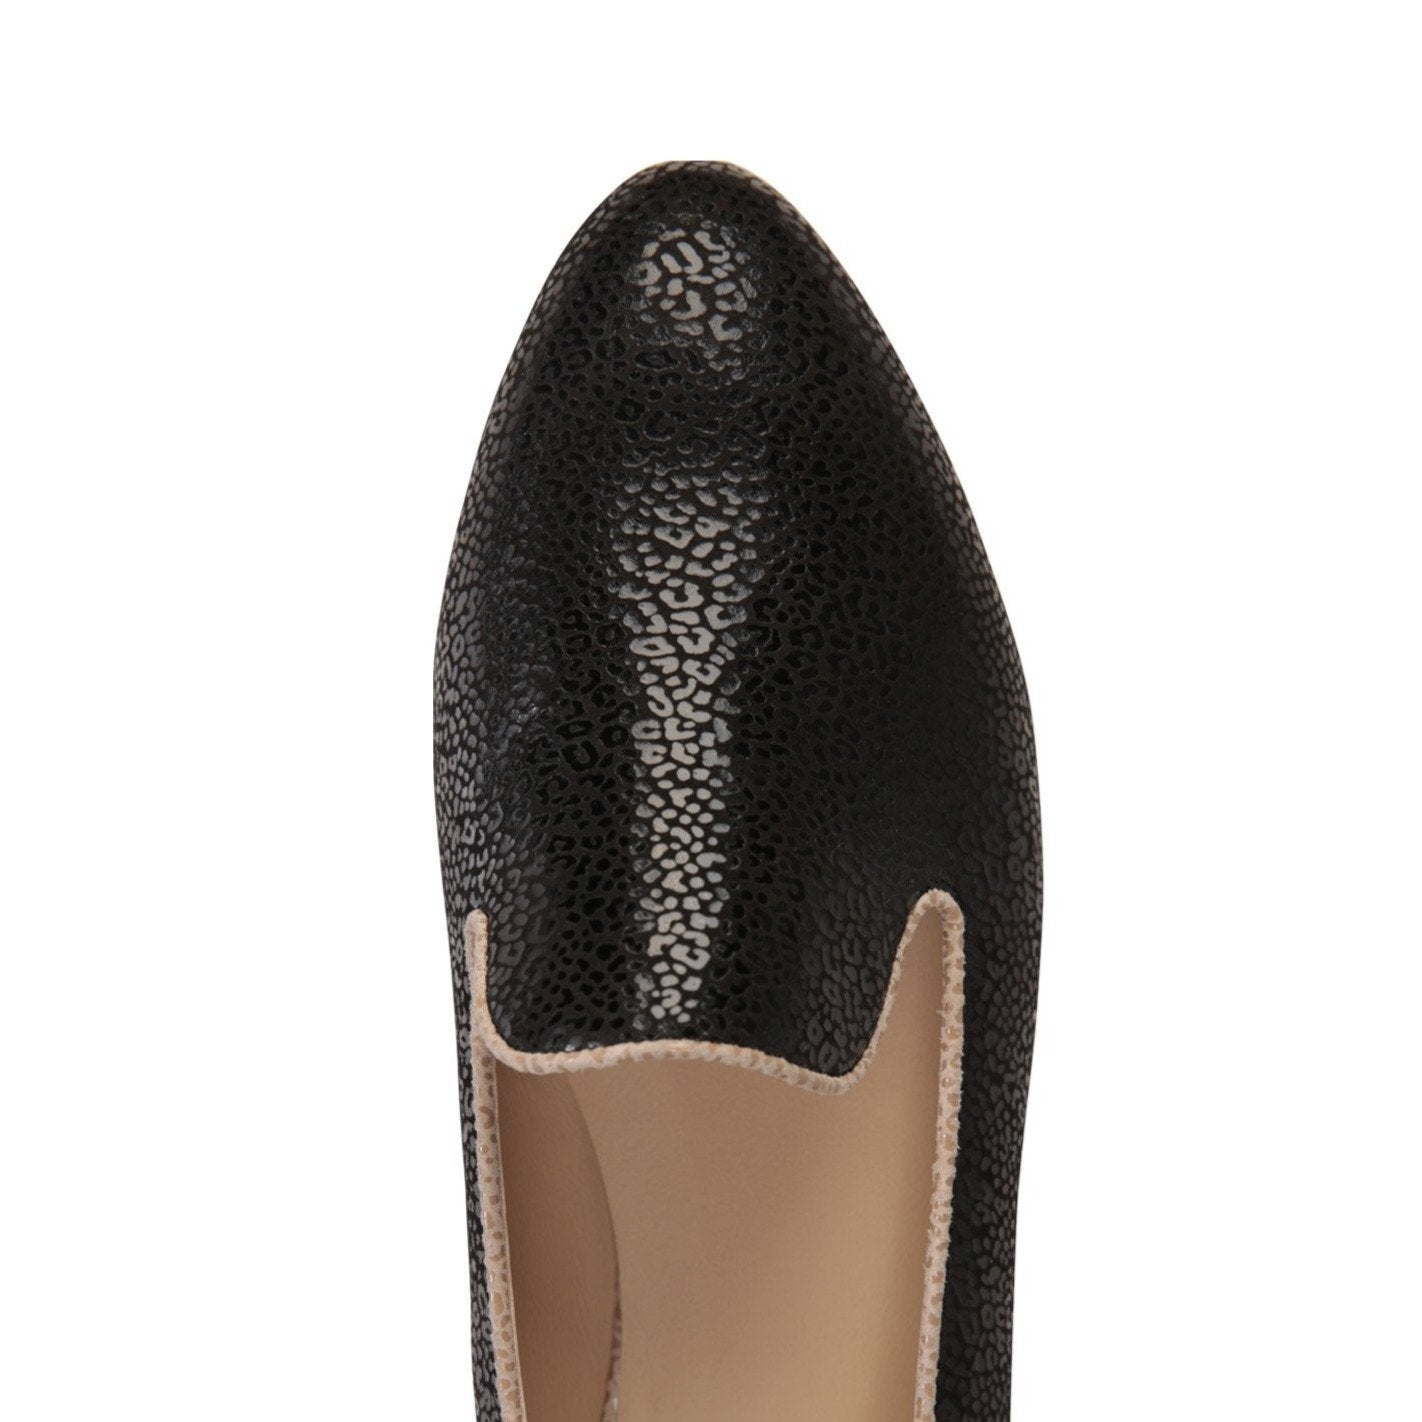 RAVENNA - Savannah Nero + Tan, VIAJIYU - Women's Hand Made Sustainable Luxury Shoes. Made in Italy. Made to Order.